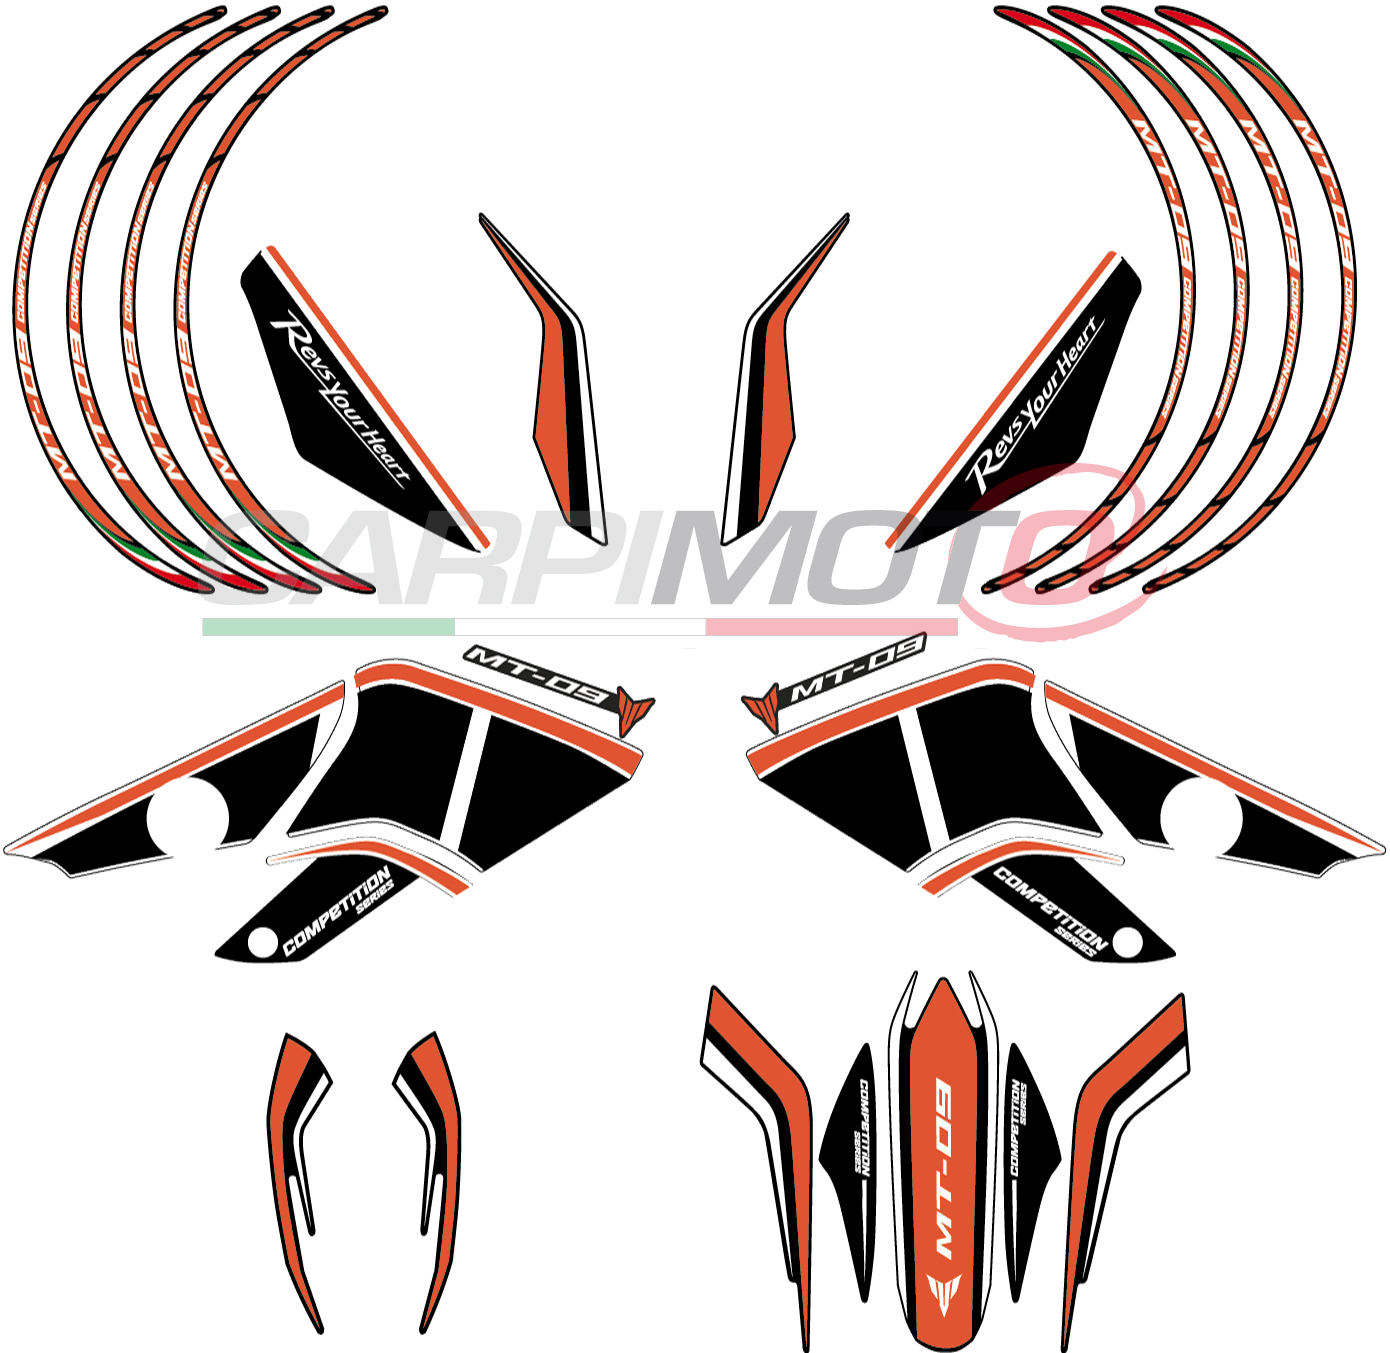 Complete stickers for yamaha mt 09 color black white orange glossy finish